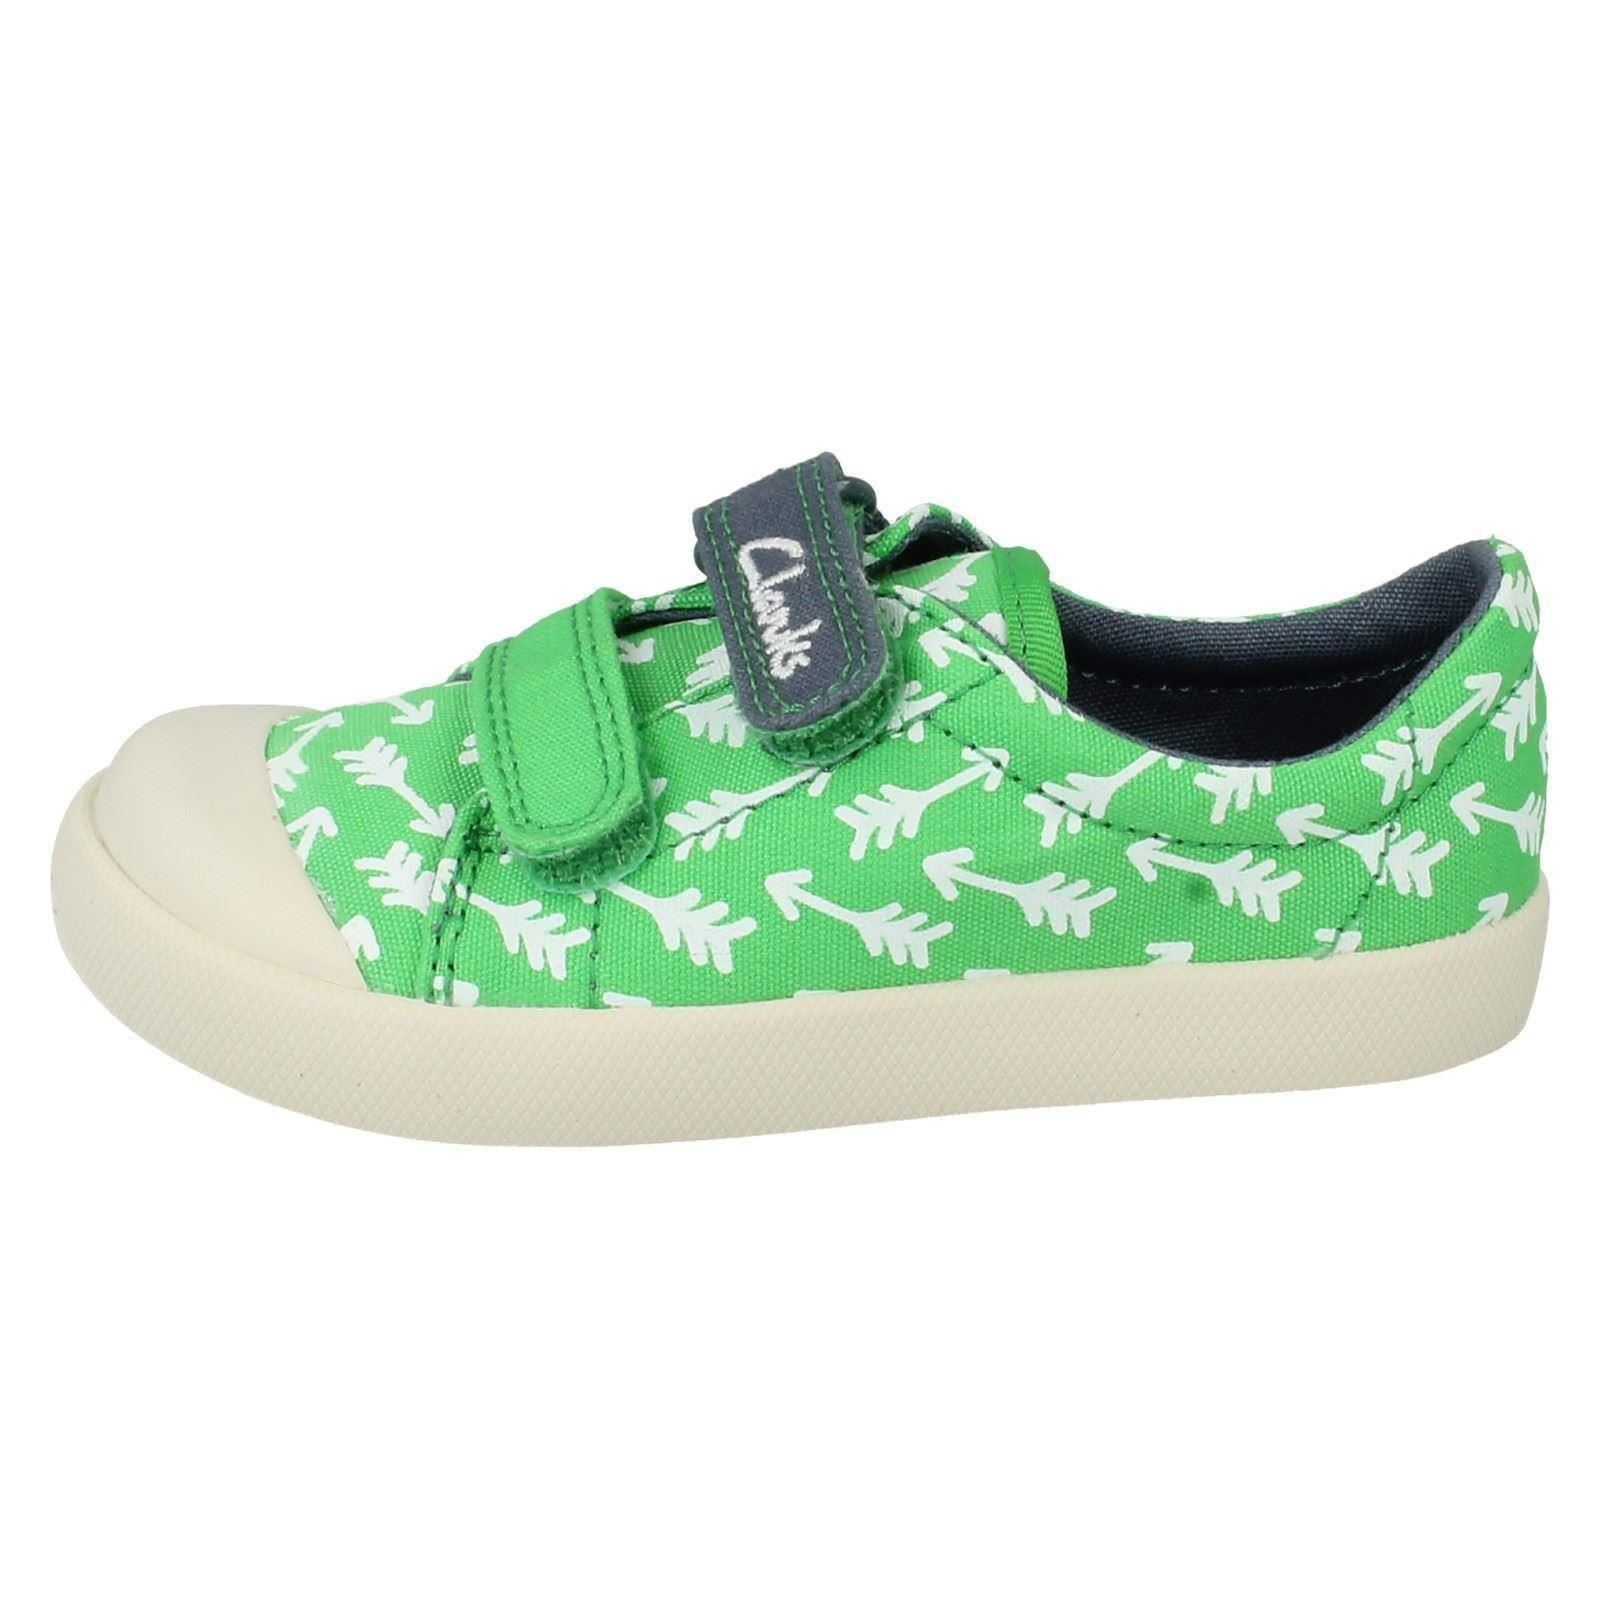 boys clarks canvas casual shoes halcy fst ebay